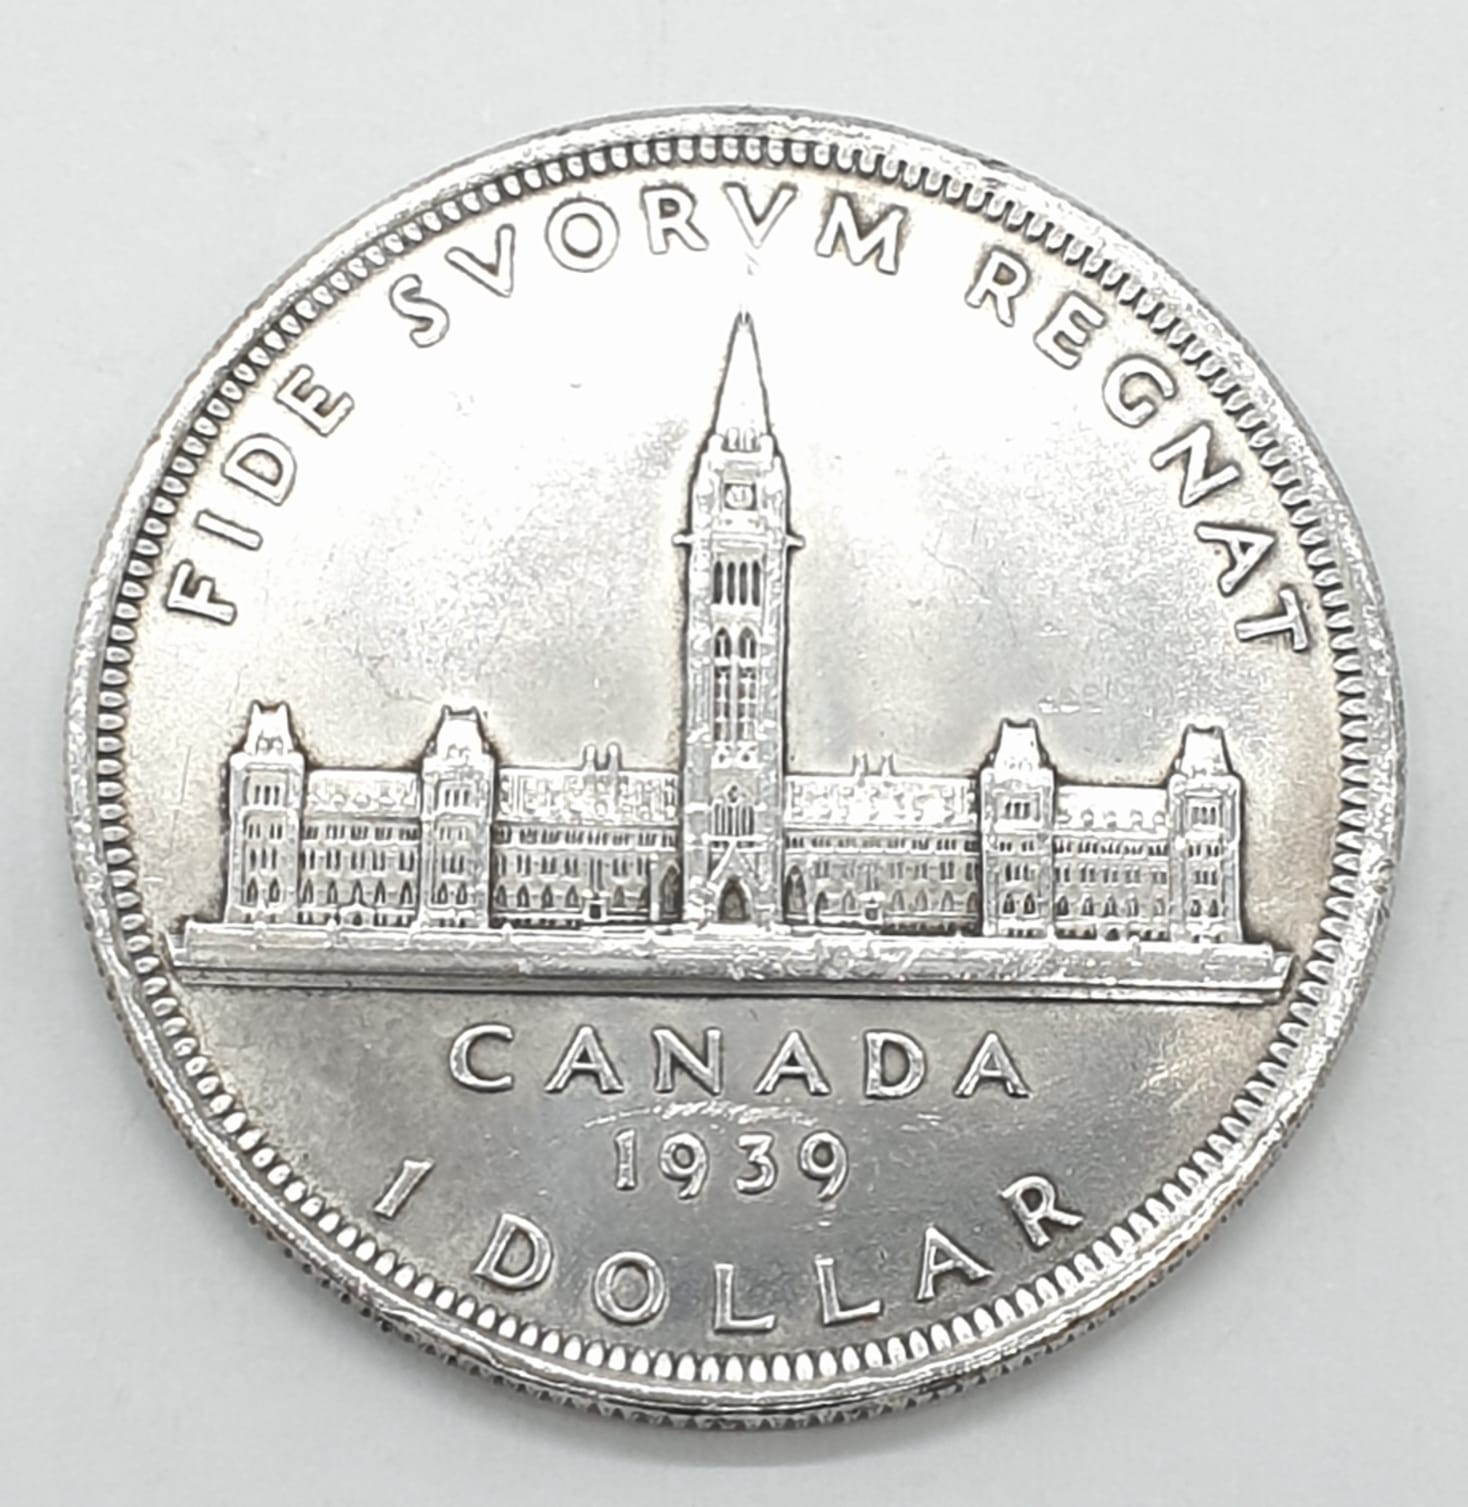 Silver 1939 Canadian 'Ottawa' dollar. Clear and raised definition to both sides. Slight nicks to